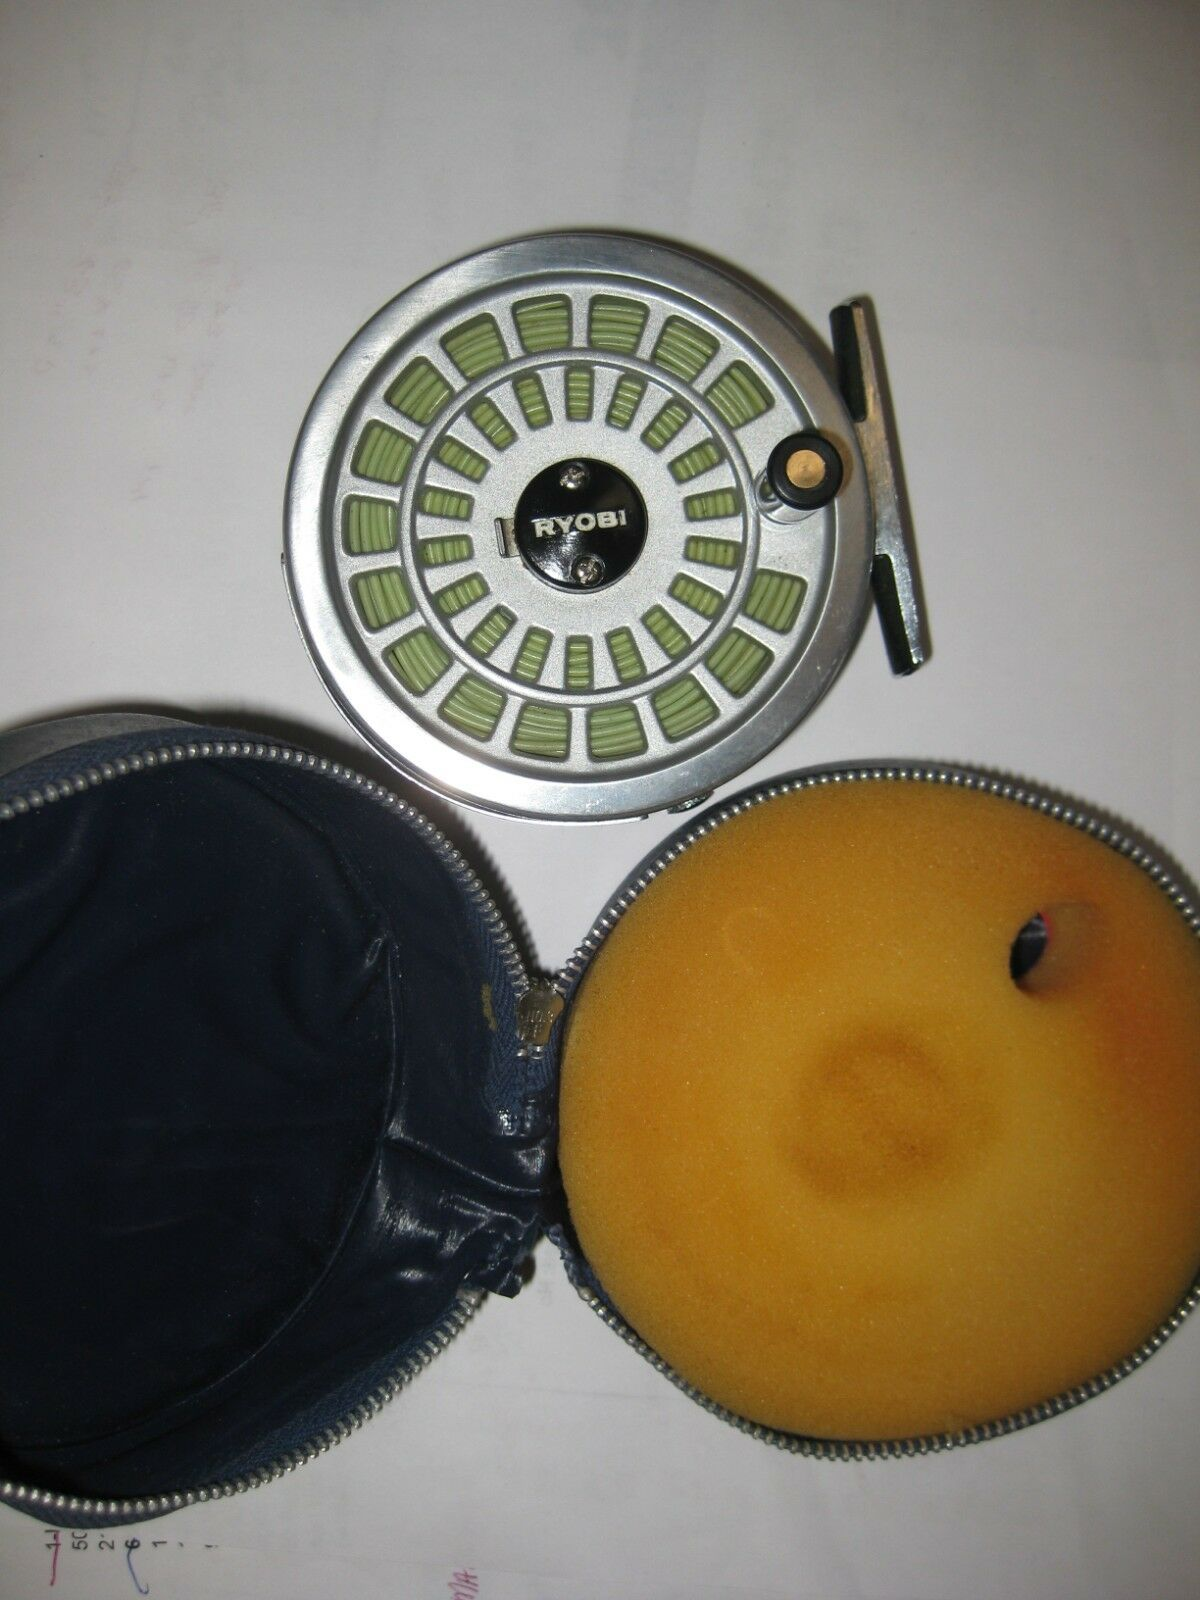 Vintage Ryobi 355 Fly Fishing Reel and Case